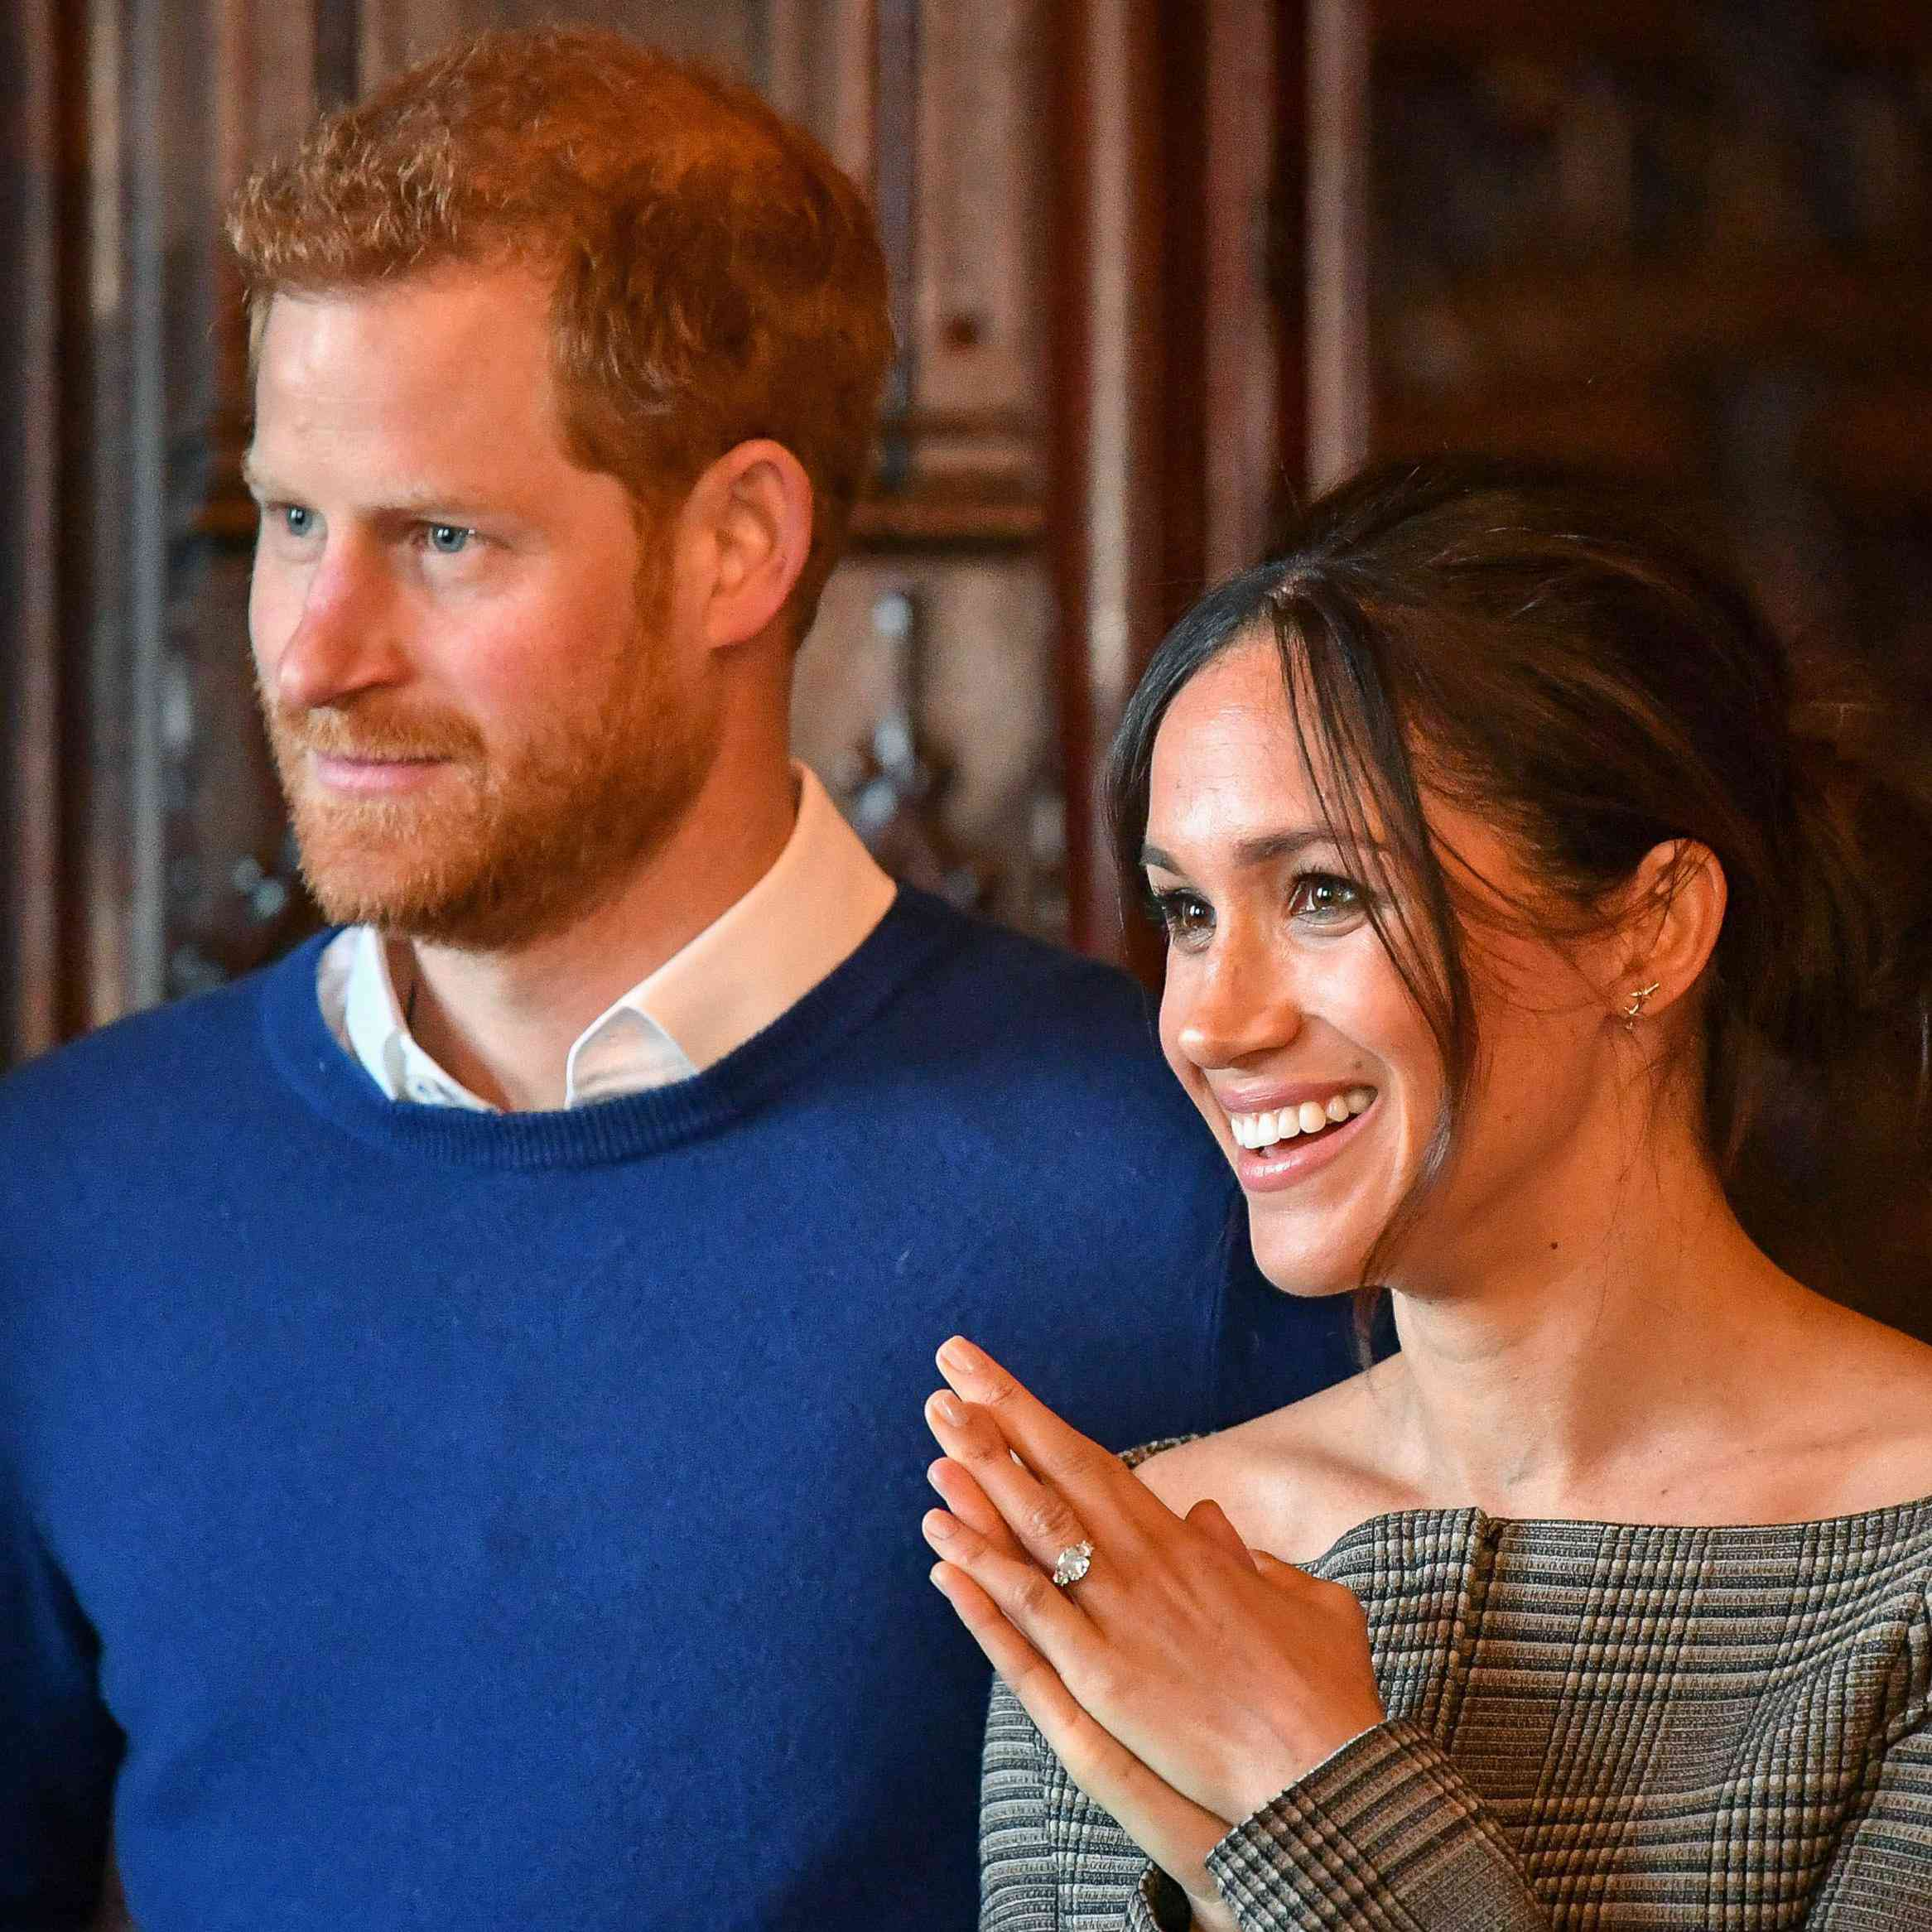 Who Pays For The Royal Wedding.Here S Who S Paying For Prince Harry And Meghan Markle S Royal Wedding